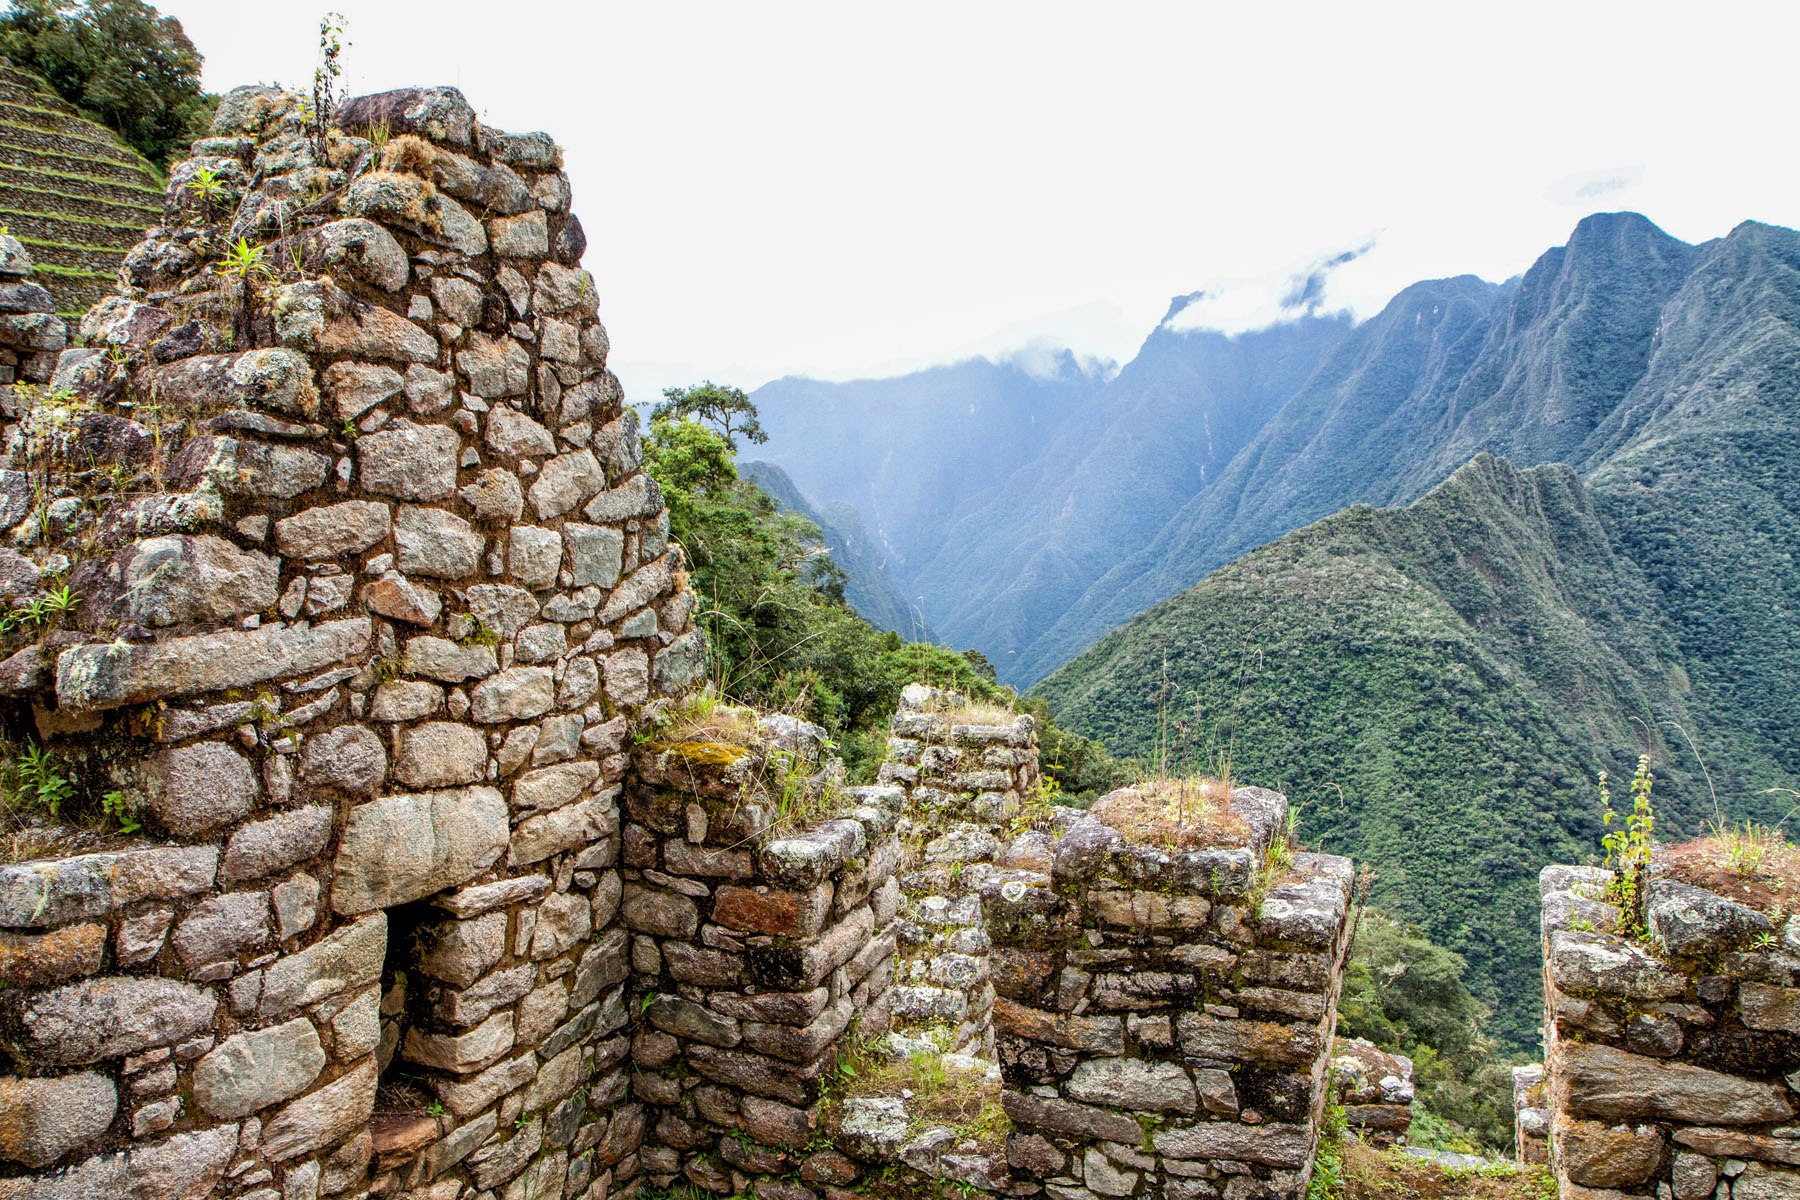 On the Inca Trail